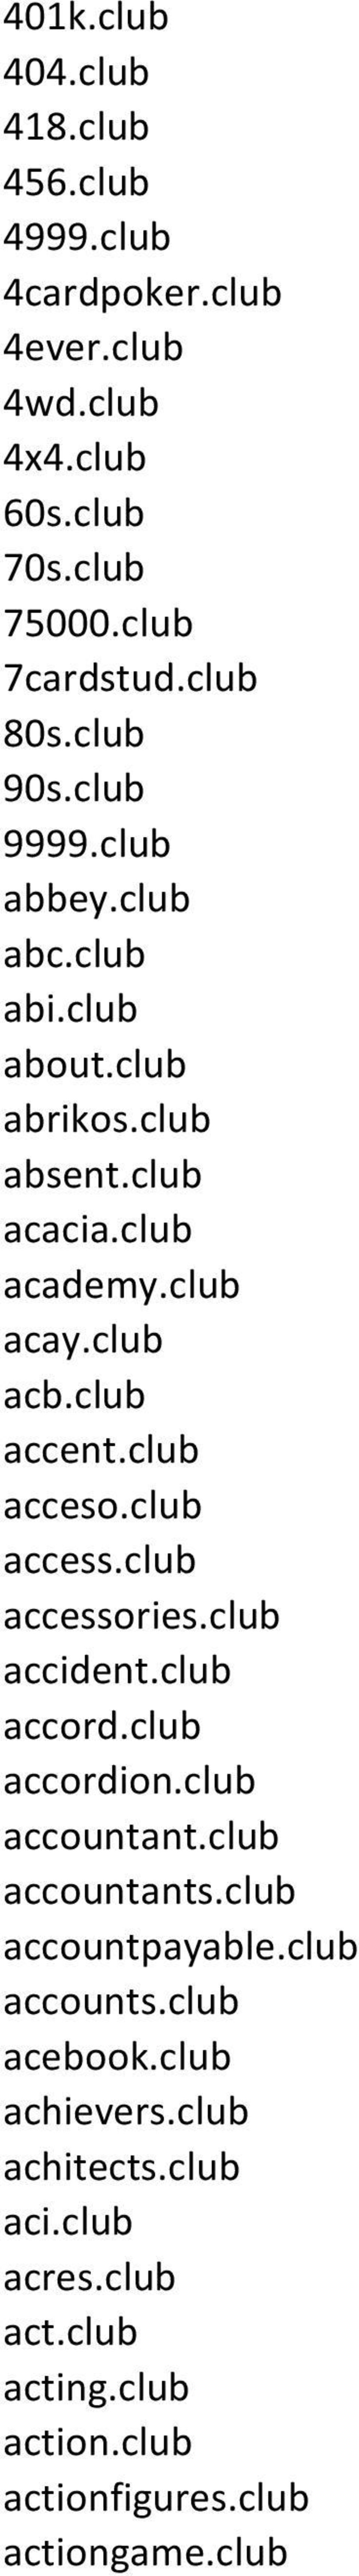 club acceso.club access.club accessories.club accident.club accord.club accordion.club accountant.club accountants.club accountpayable.